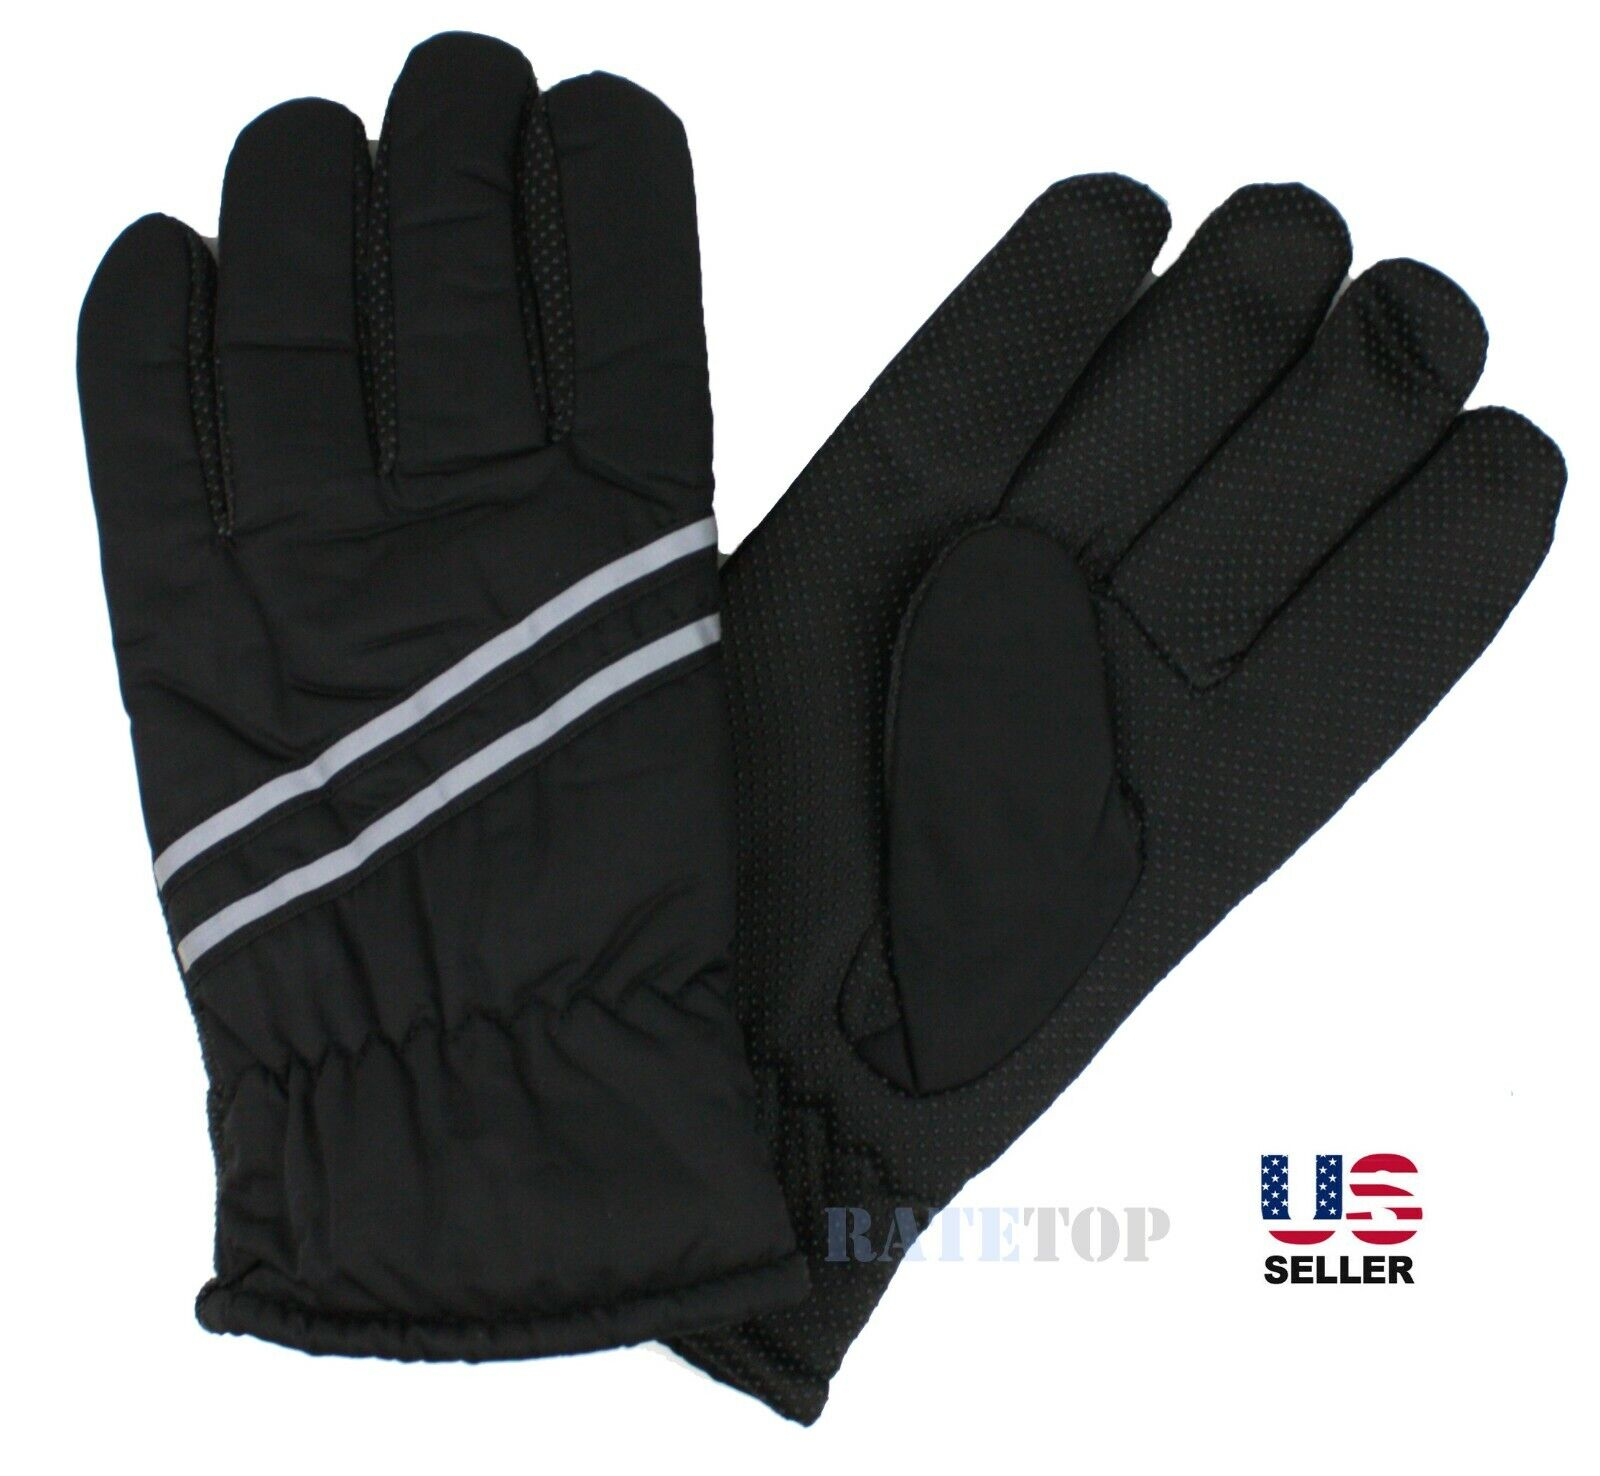 Mens Winter Thermal Fleece Lined Waterproof Reflective Ski Snow Gloves Mitten Clothing, Shoes & Accessories